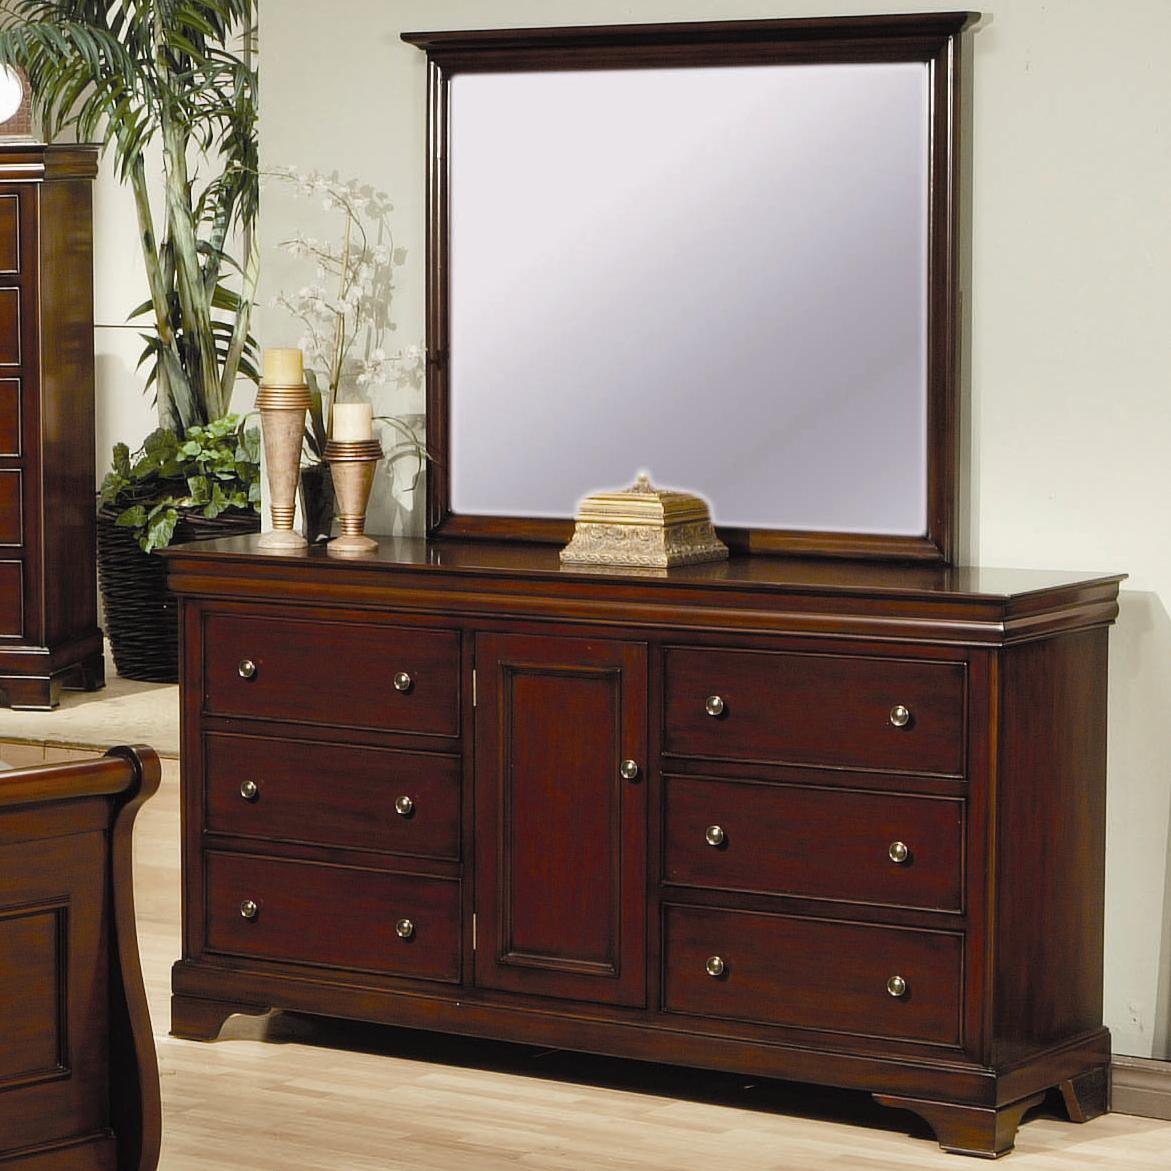 Coaster Versailles Dresser and Mirror - Item Number: 201486+484